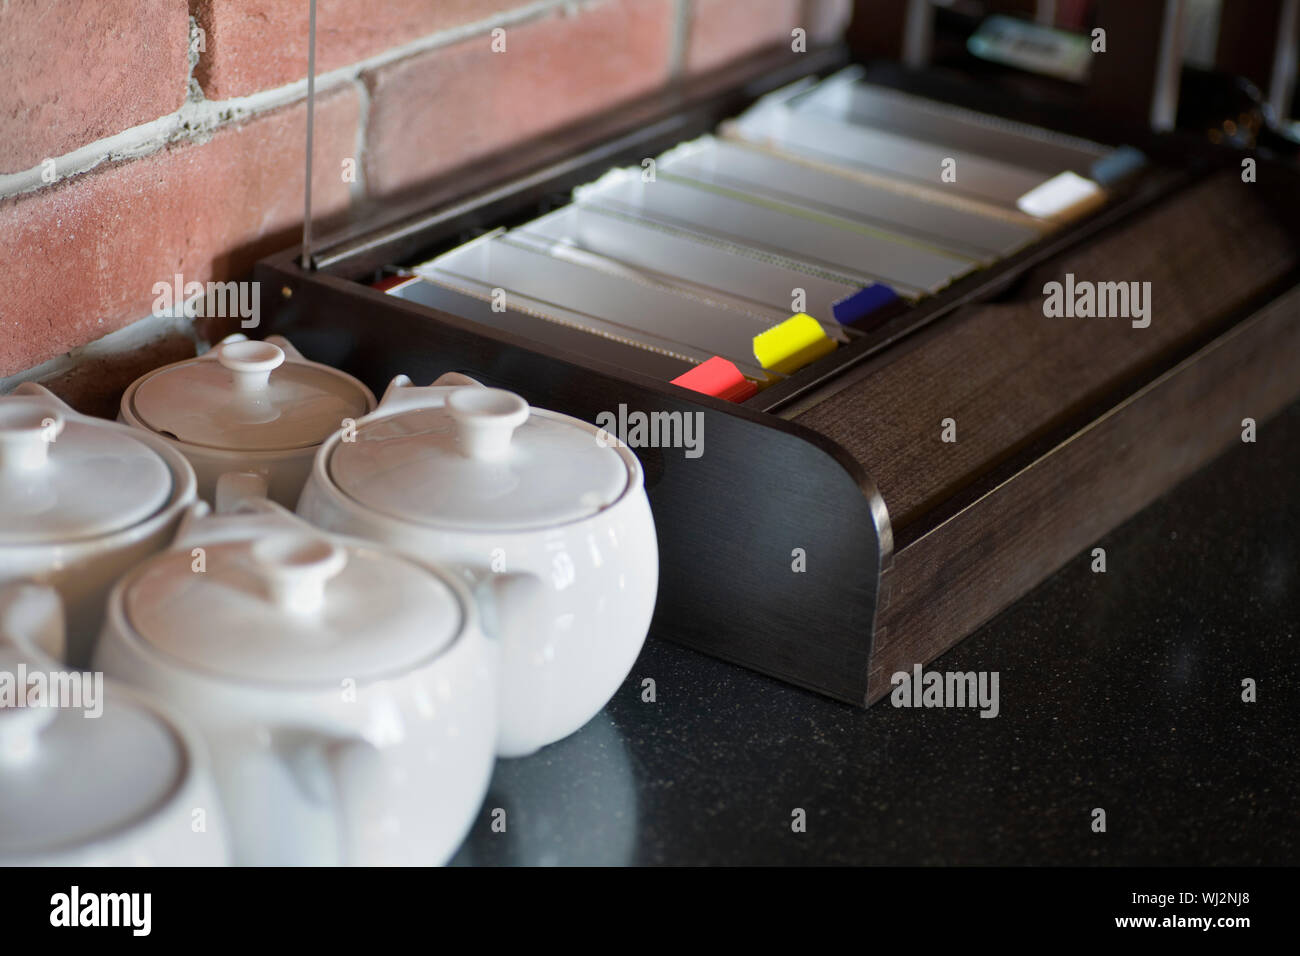 Little China Teapots Lined Up Next To Tea Sachets On Kitchen